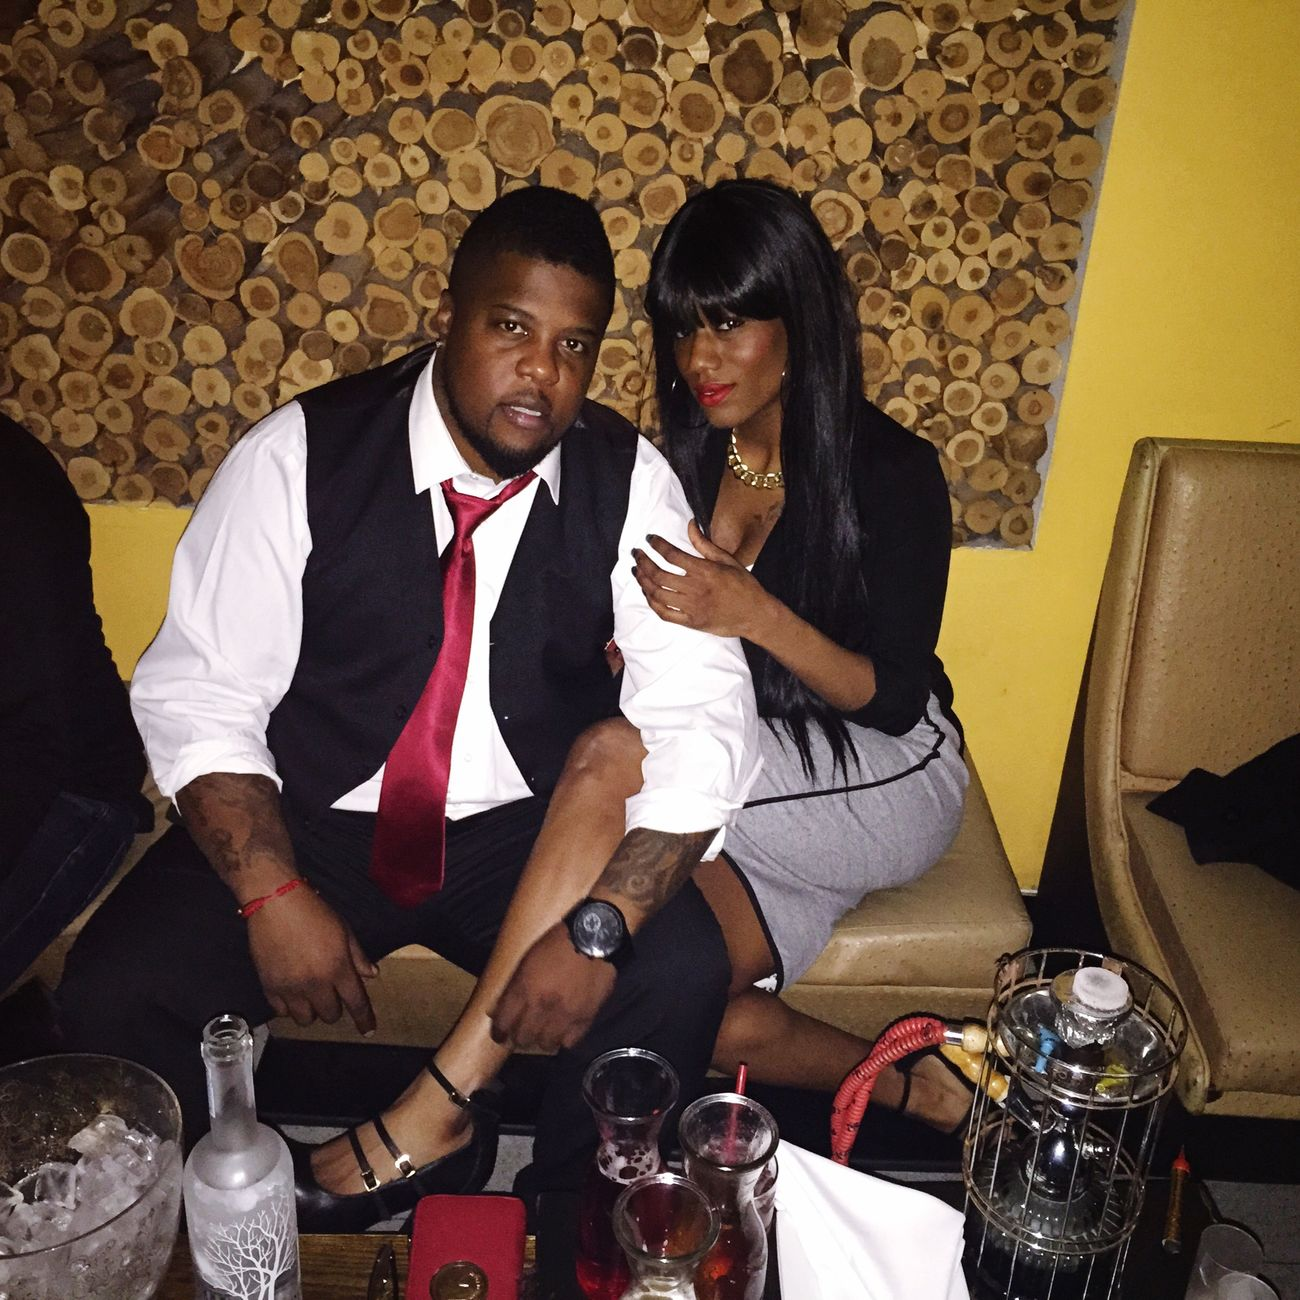 NYCNights 3piece Suit with arm Candy belvedere Hookah Beardgang EyeEm Best Shots Love A man and his Lady...